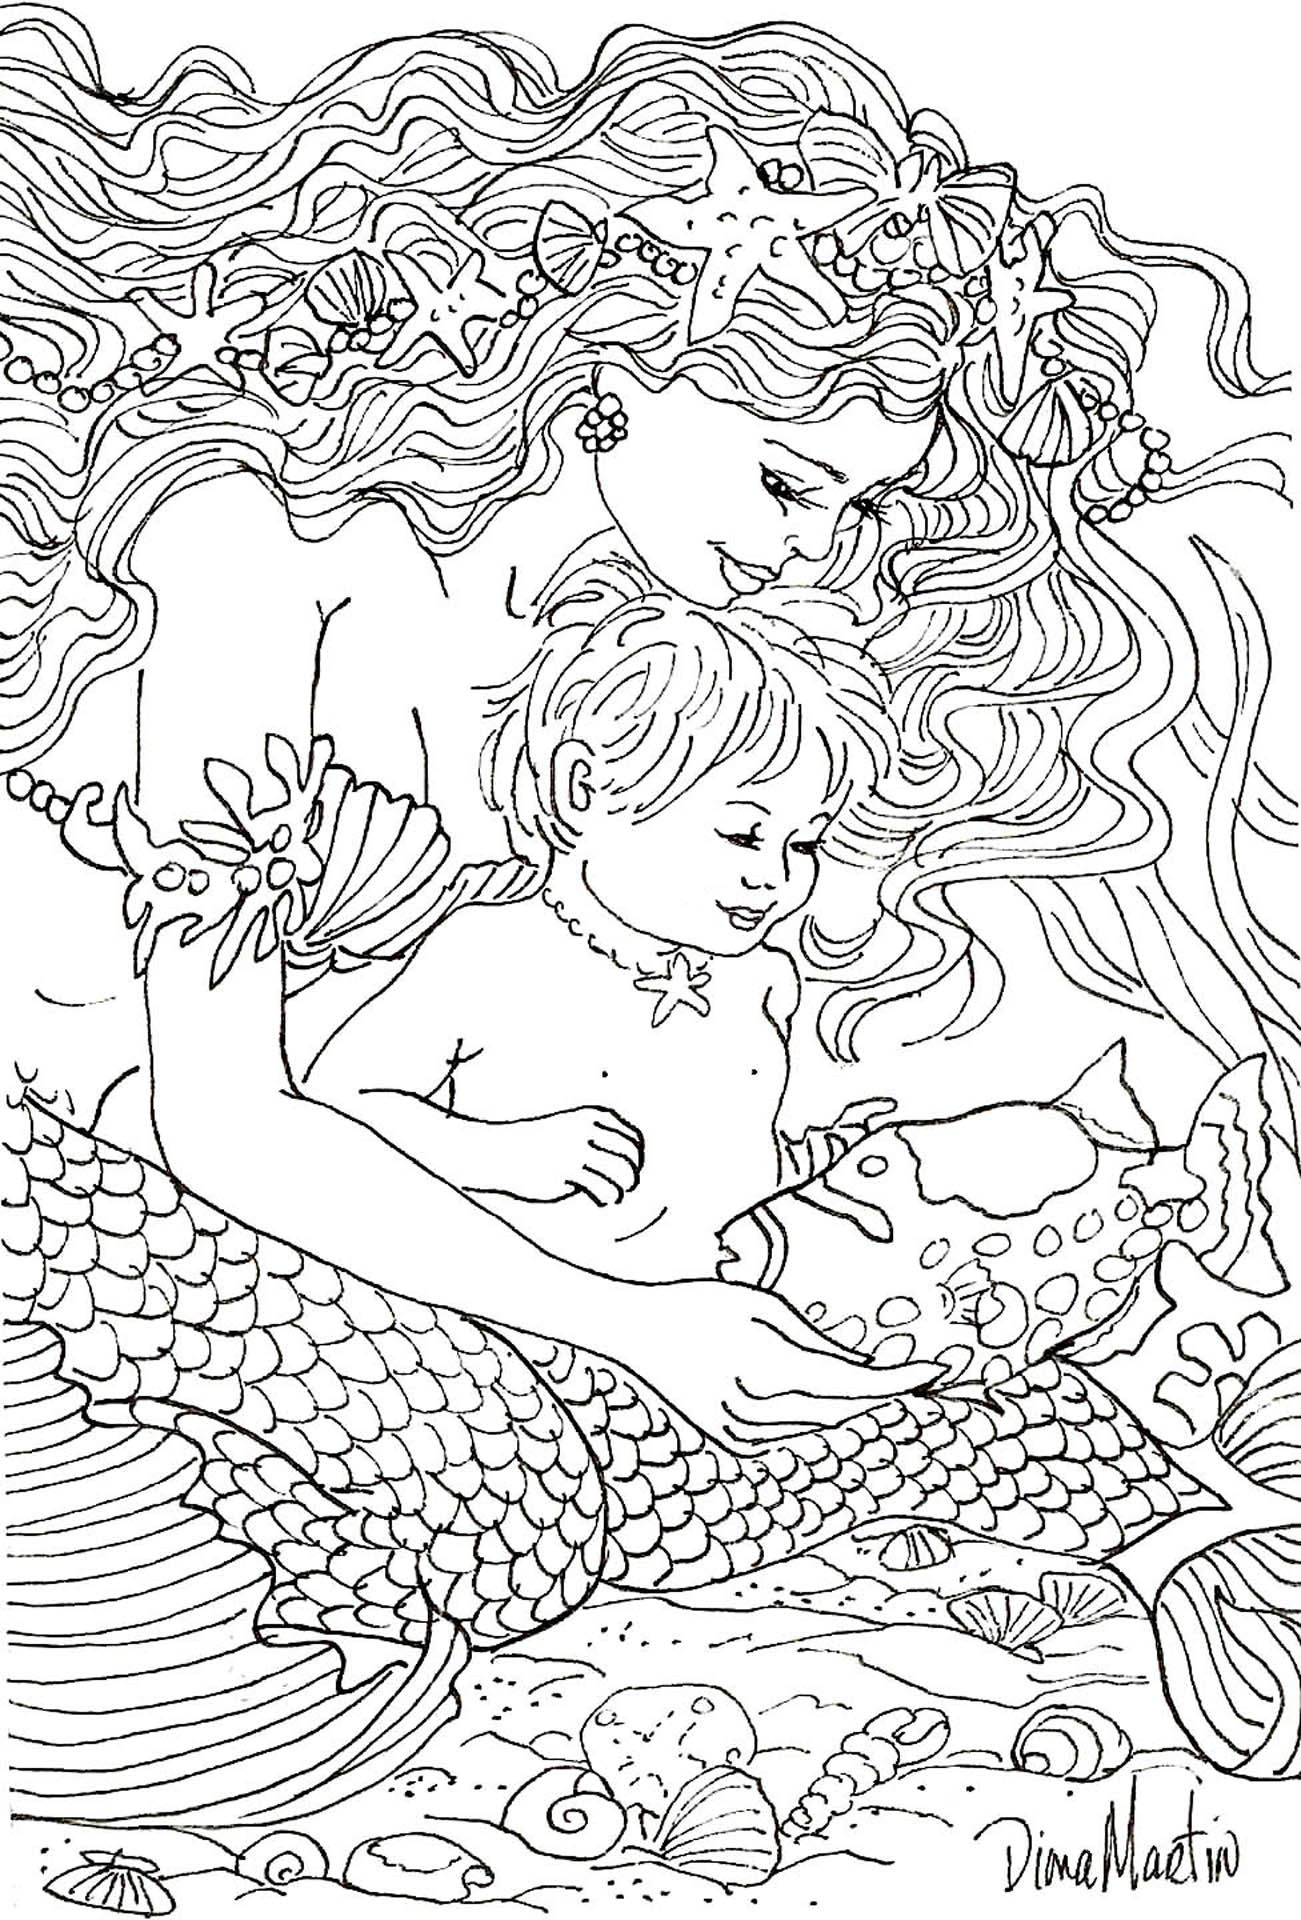 Making New Friends Mermaid Coloring Pages Mermaid Coloring Mandala Coloring Pages